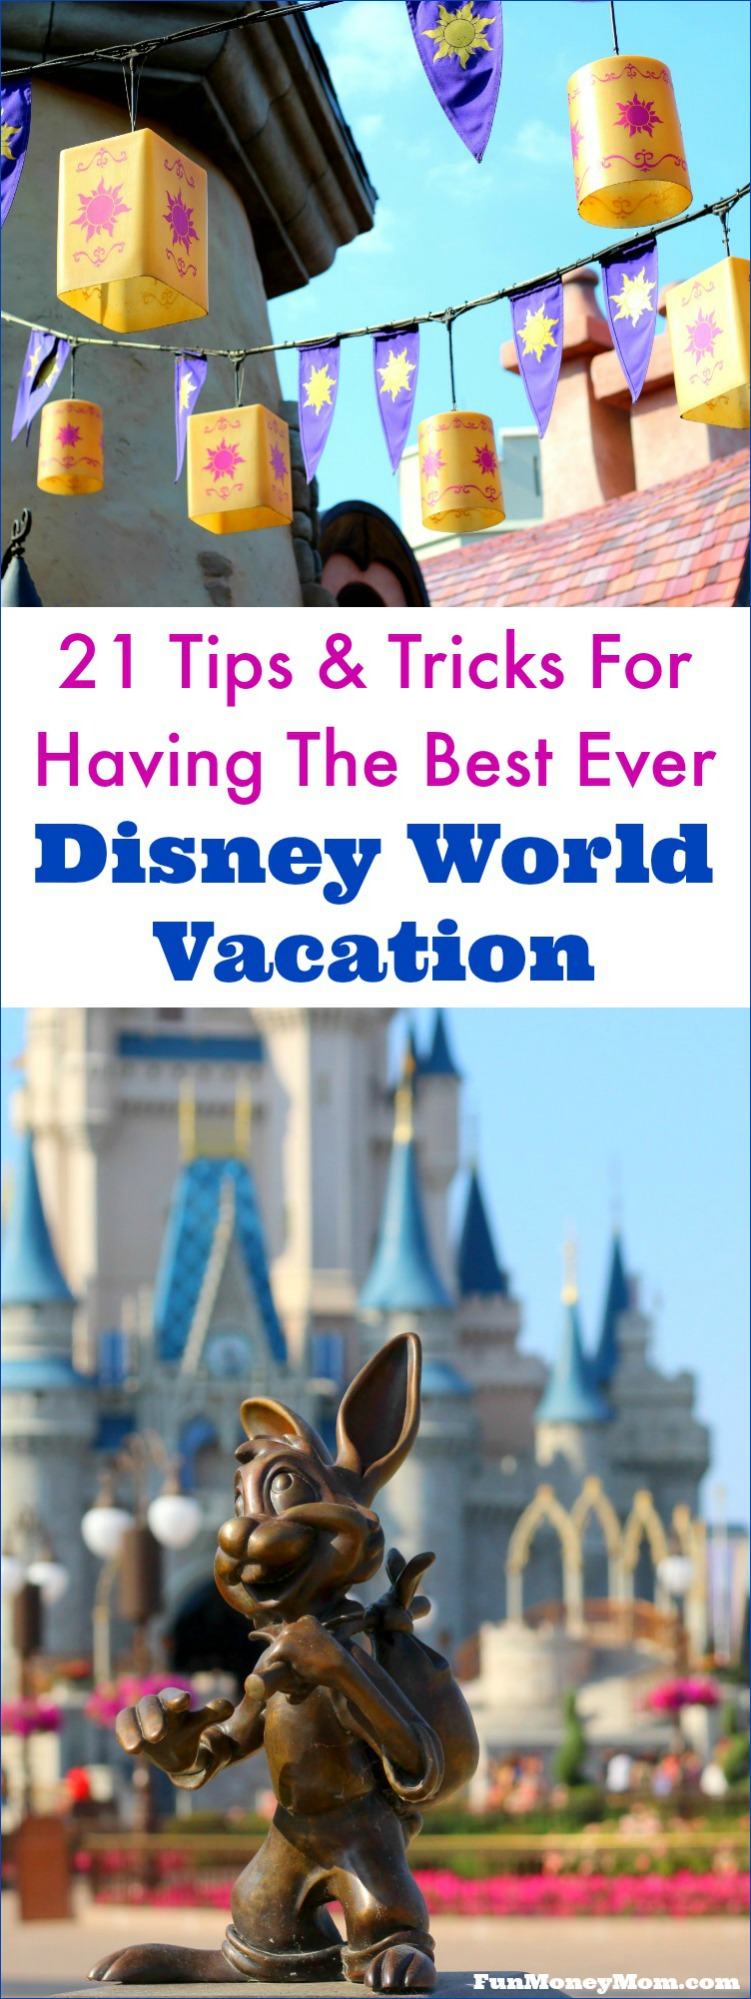 Want to have the best Disney World vacation ever? Use these 21 tips and tricks for navigating Disney and you'll have a magical time!